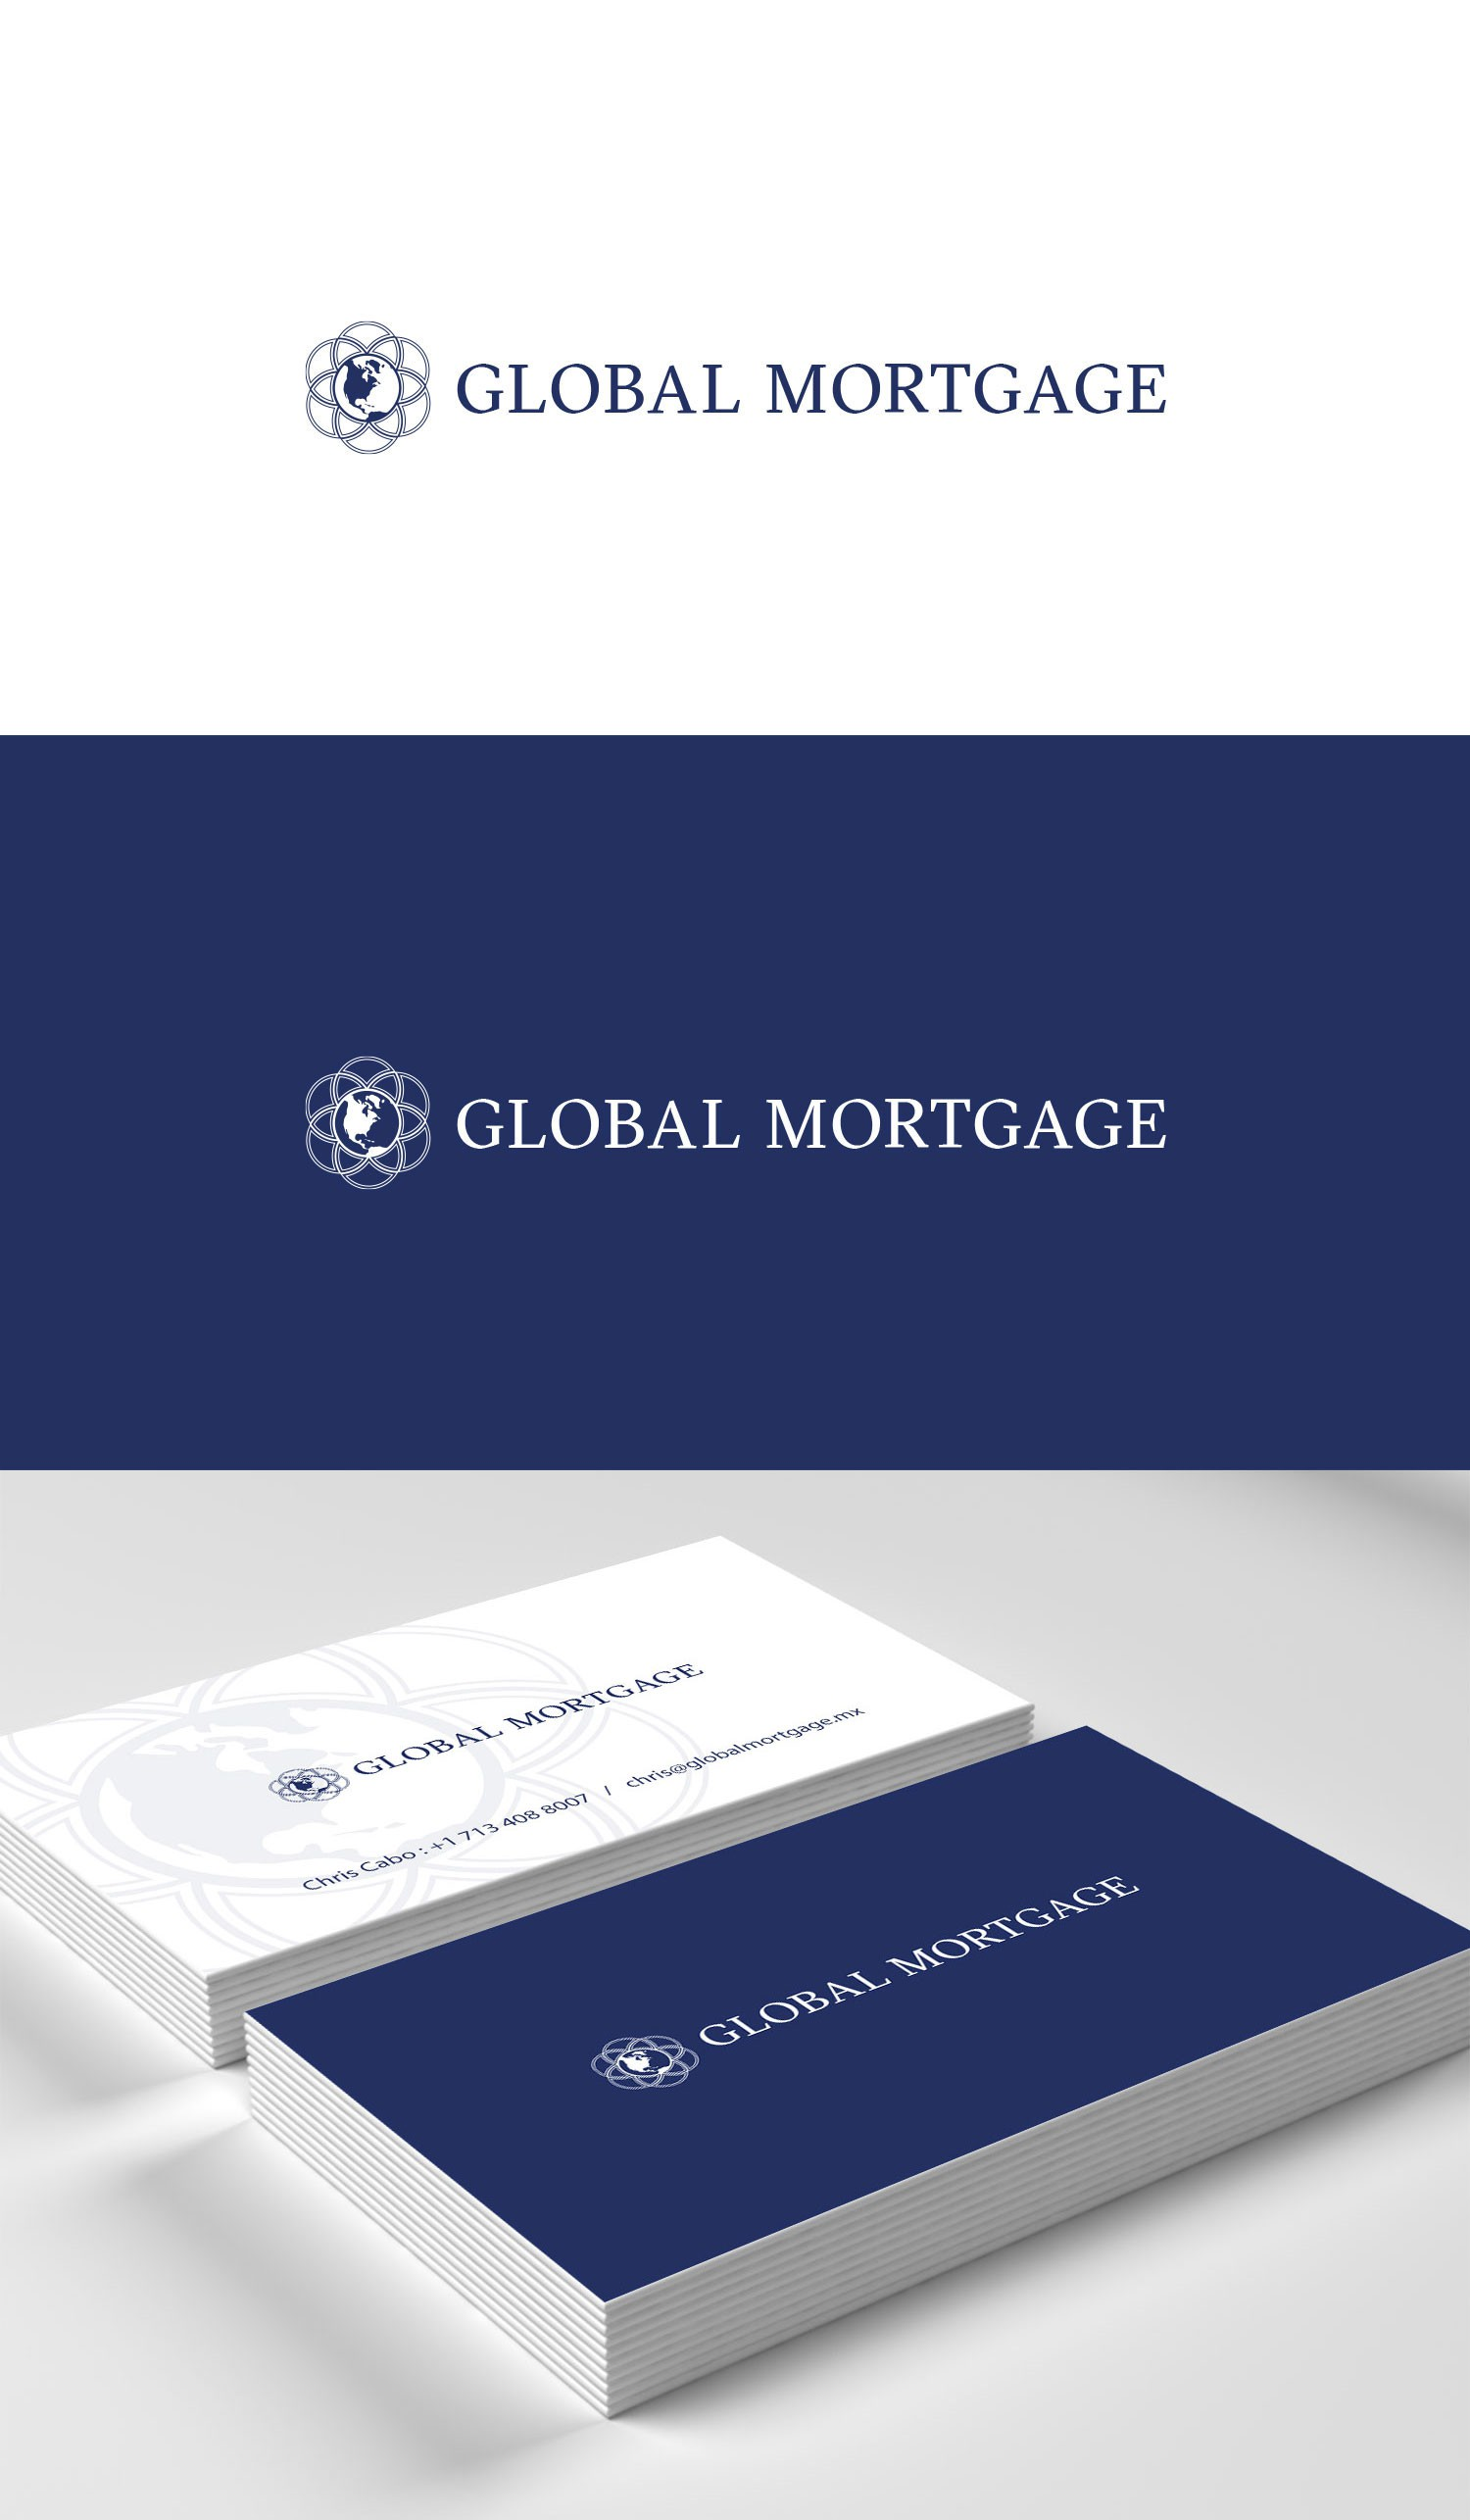 Help us create the image of an international company specializing in luxury resort real estate loans